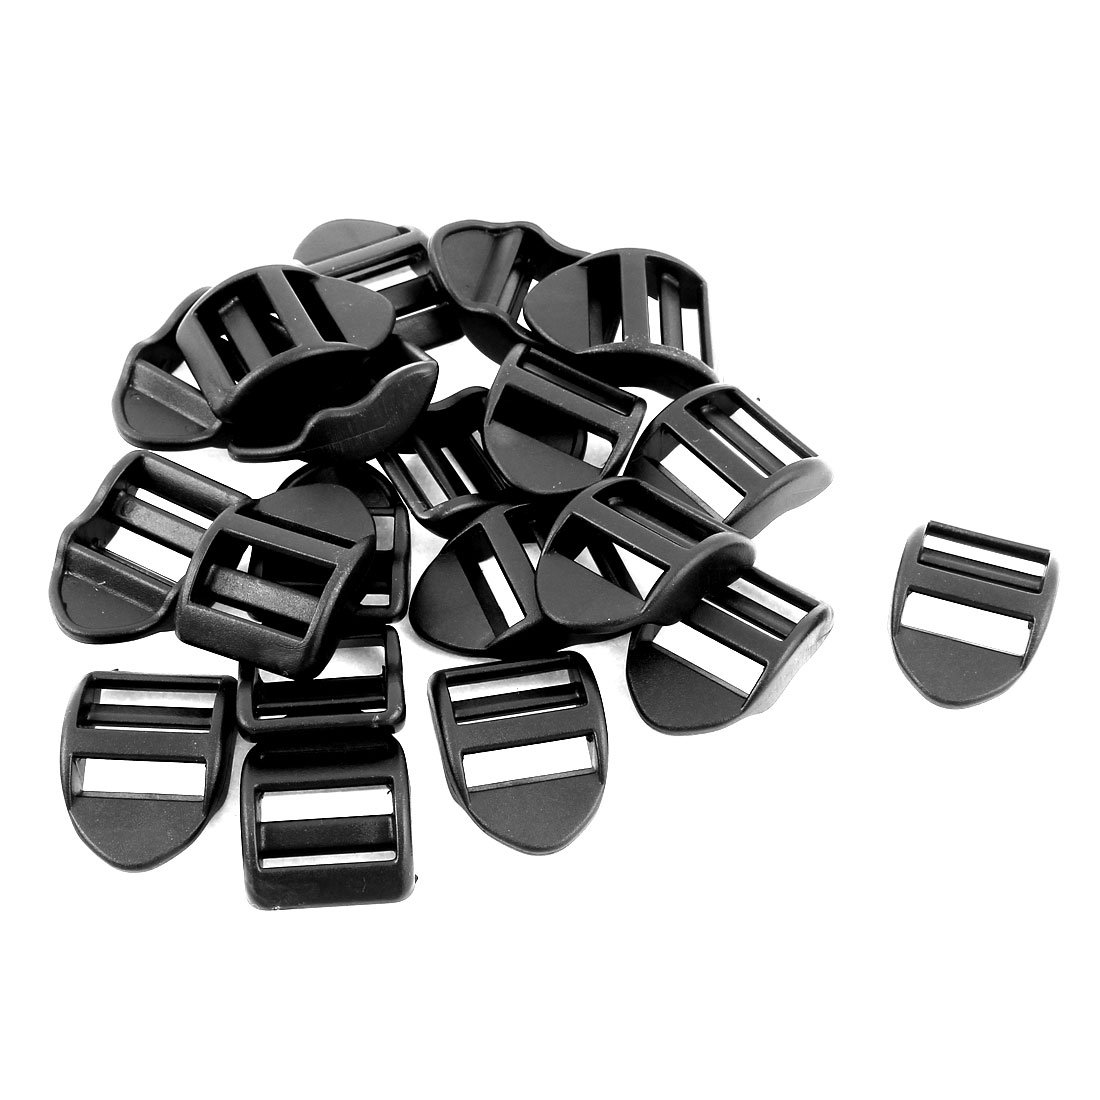 ORYOUGO 150 Pieces Spring Cord Lock Single Hole Round Ball Toggle Stoppers Sliding Cord Fastener Locks End Sport Gear Replacement